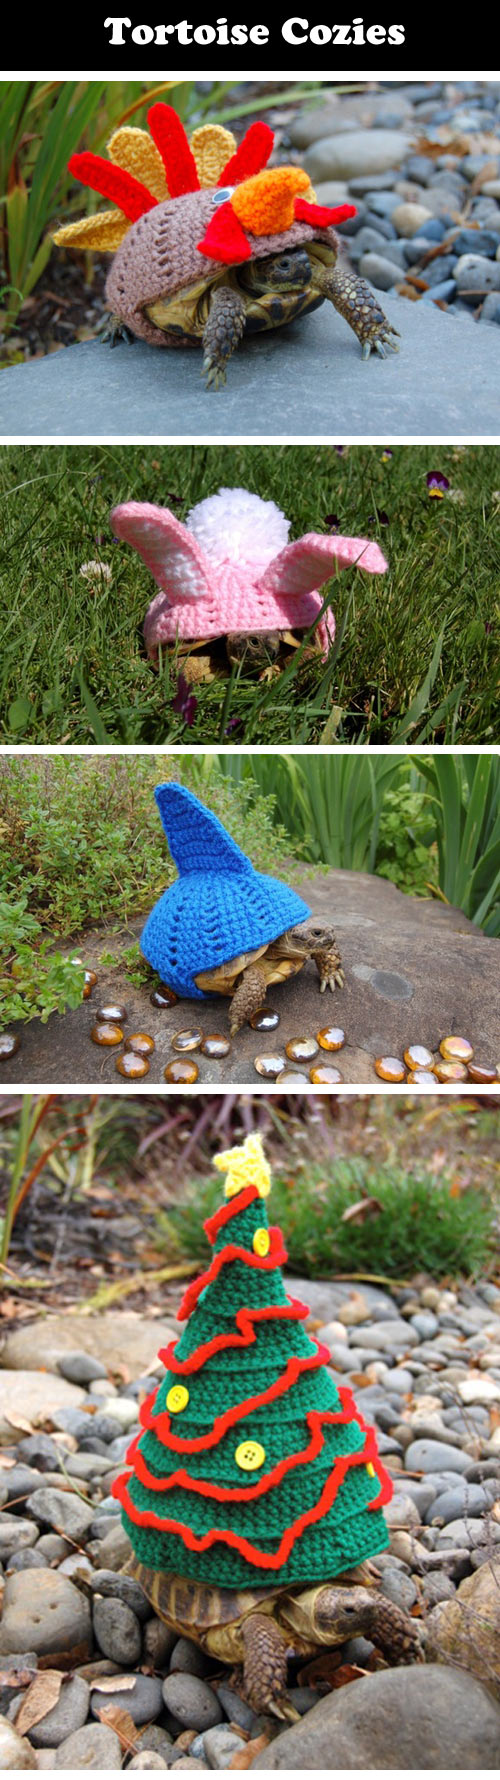 funny-tortoise-wool-cozies-knitted